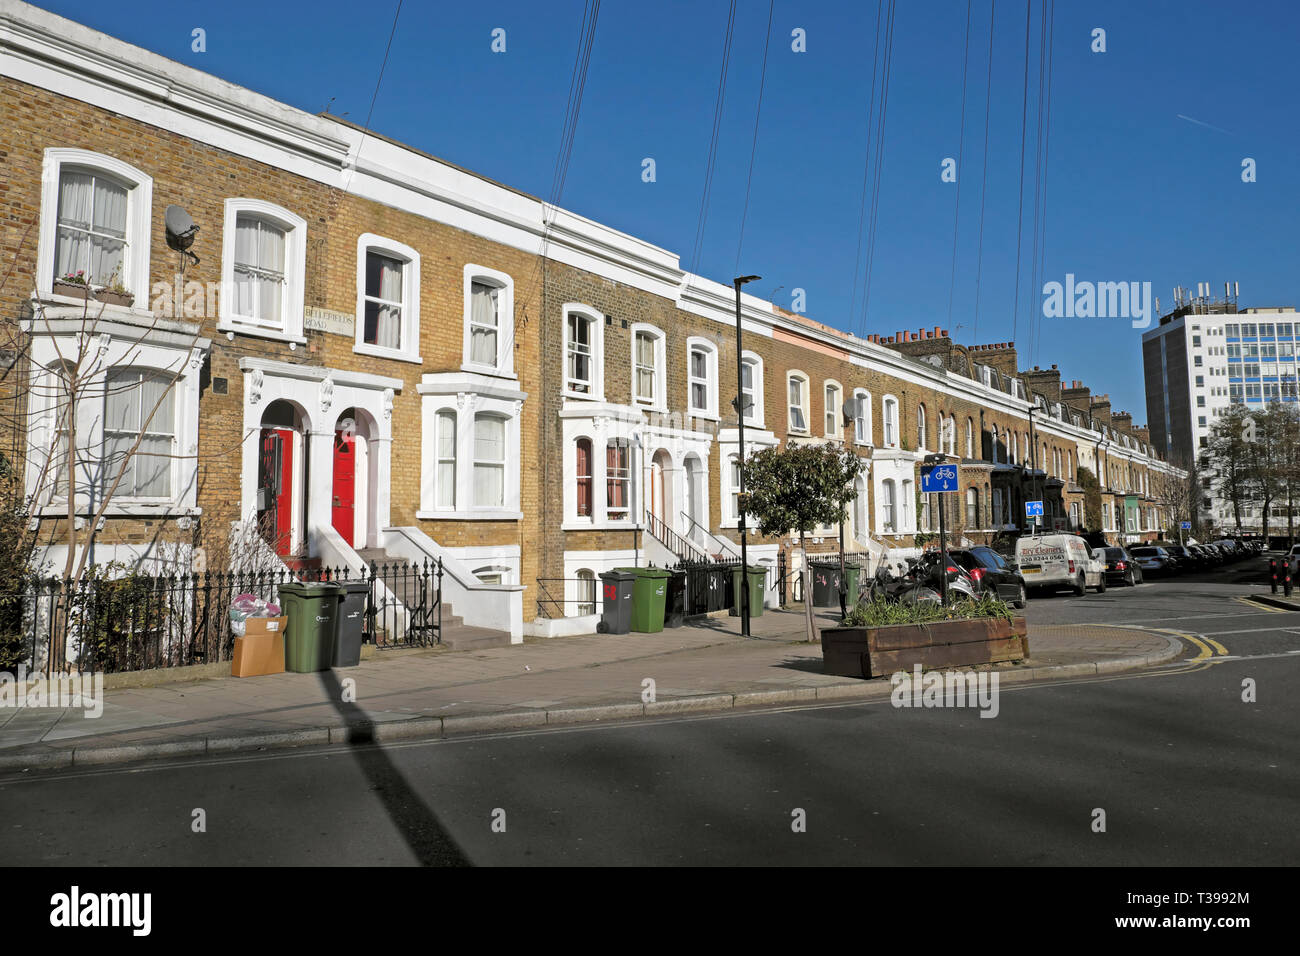 Row of terraced housing on Bellefirelds Road in Brixton with parked cars and rubbish bins outside houses, South London England UK  KATHY DEWITT Stock Photo